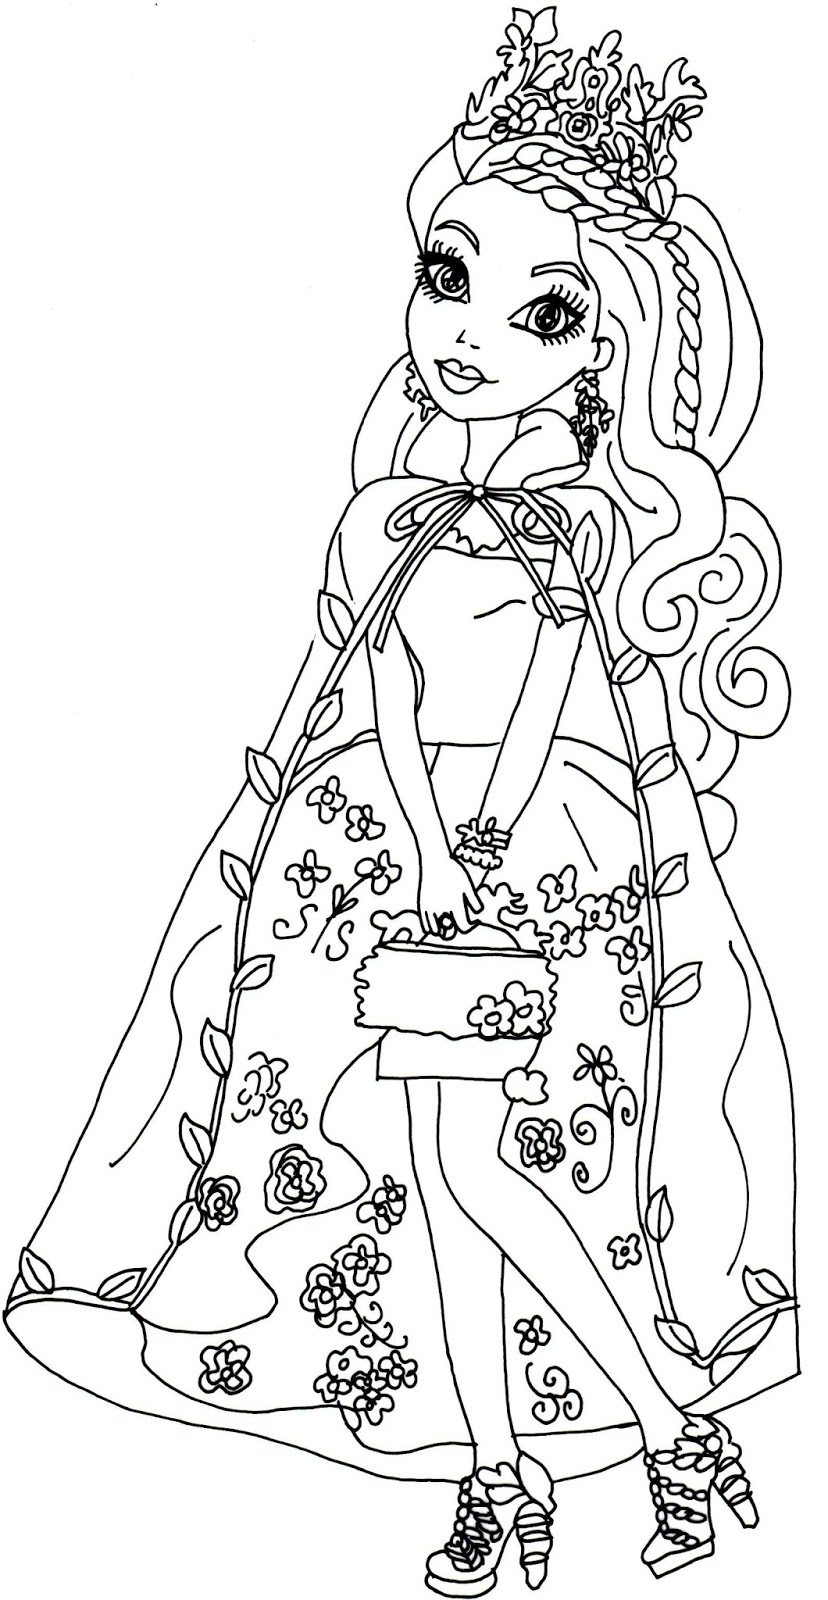 Printable coloring pages ever after high - Ashlynn Ella Legacy Day Ever After High Coloring Page